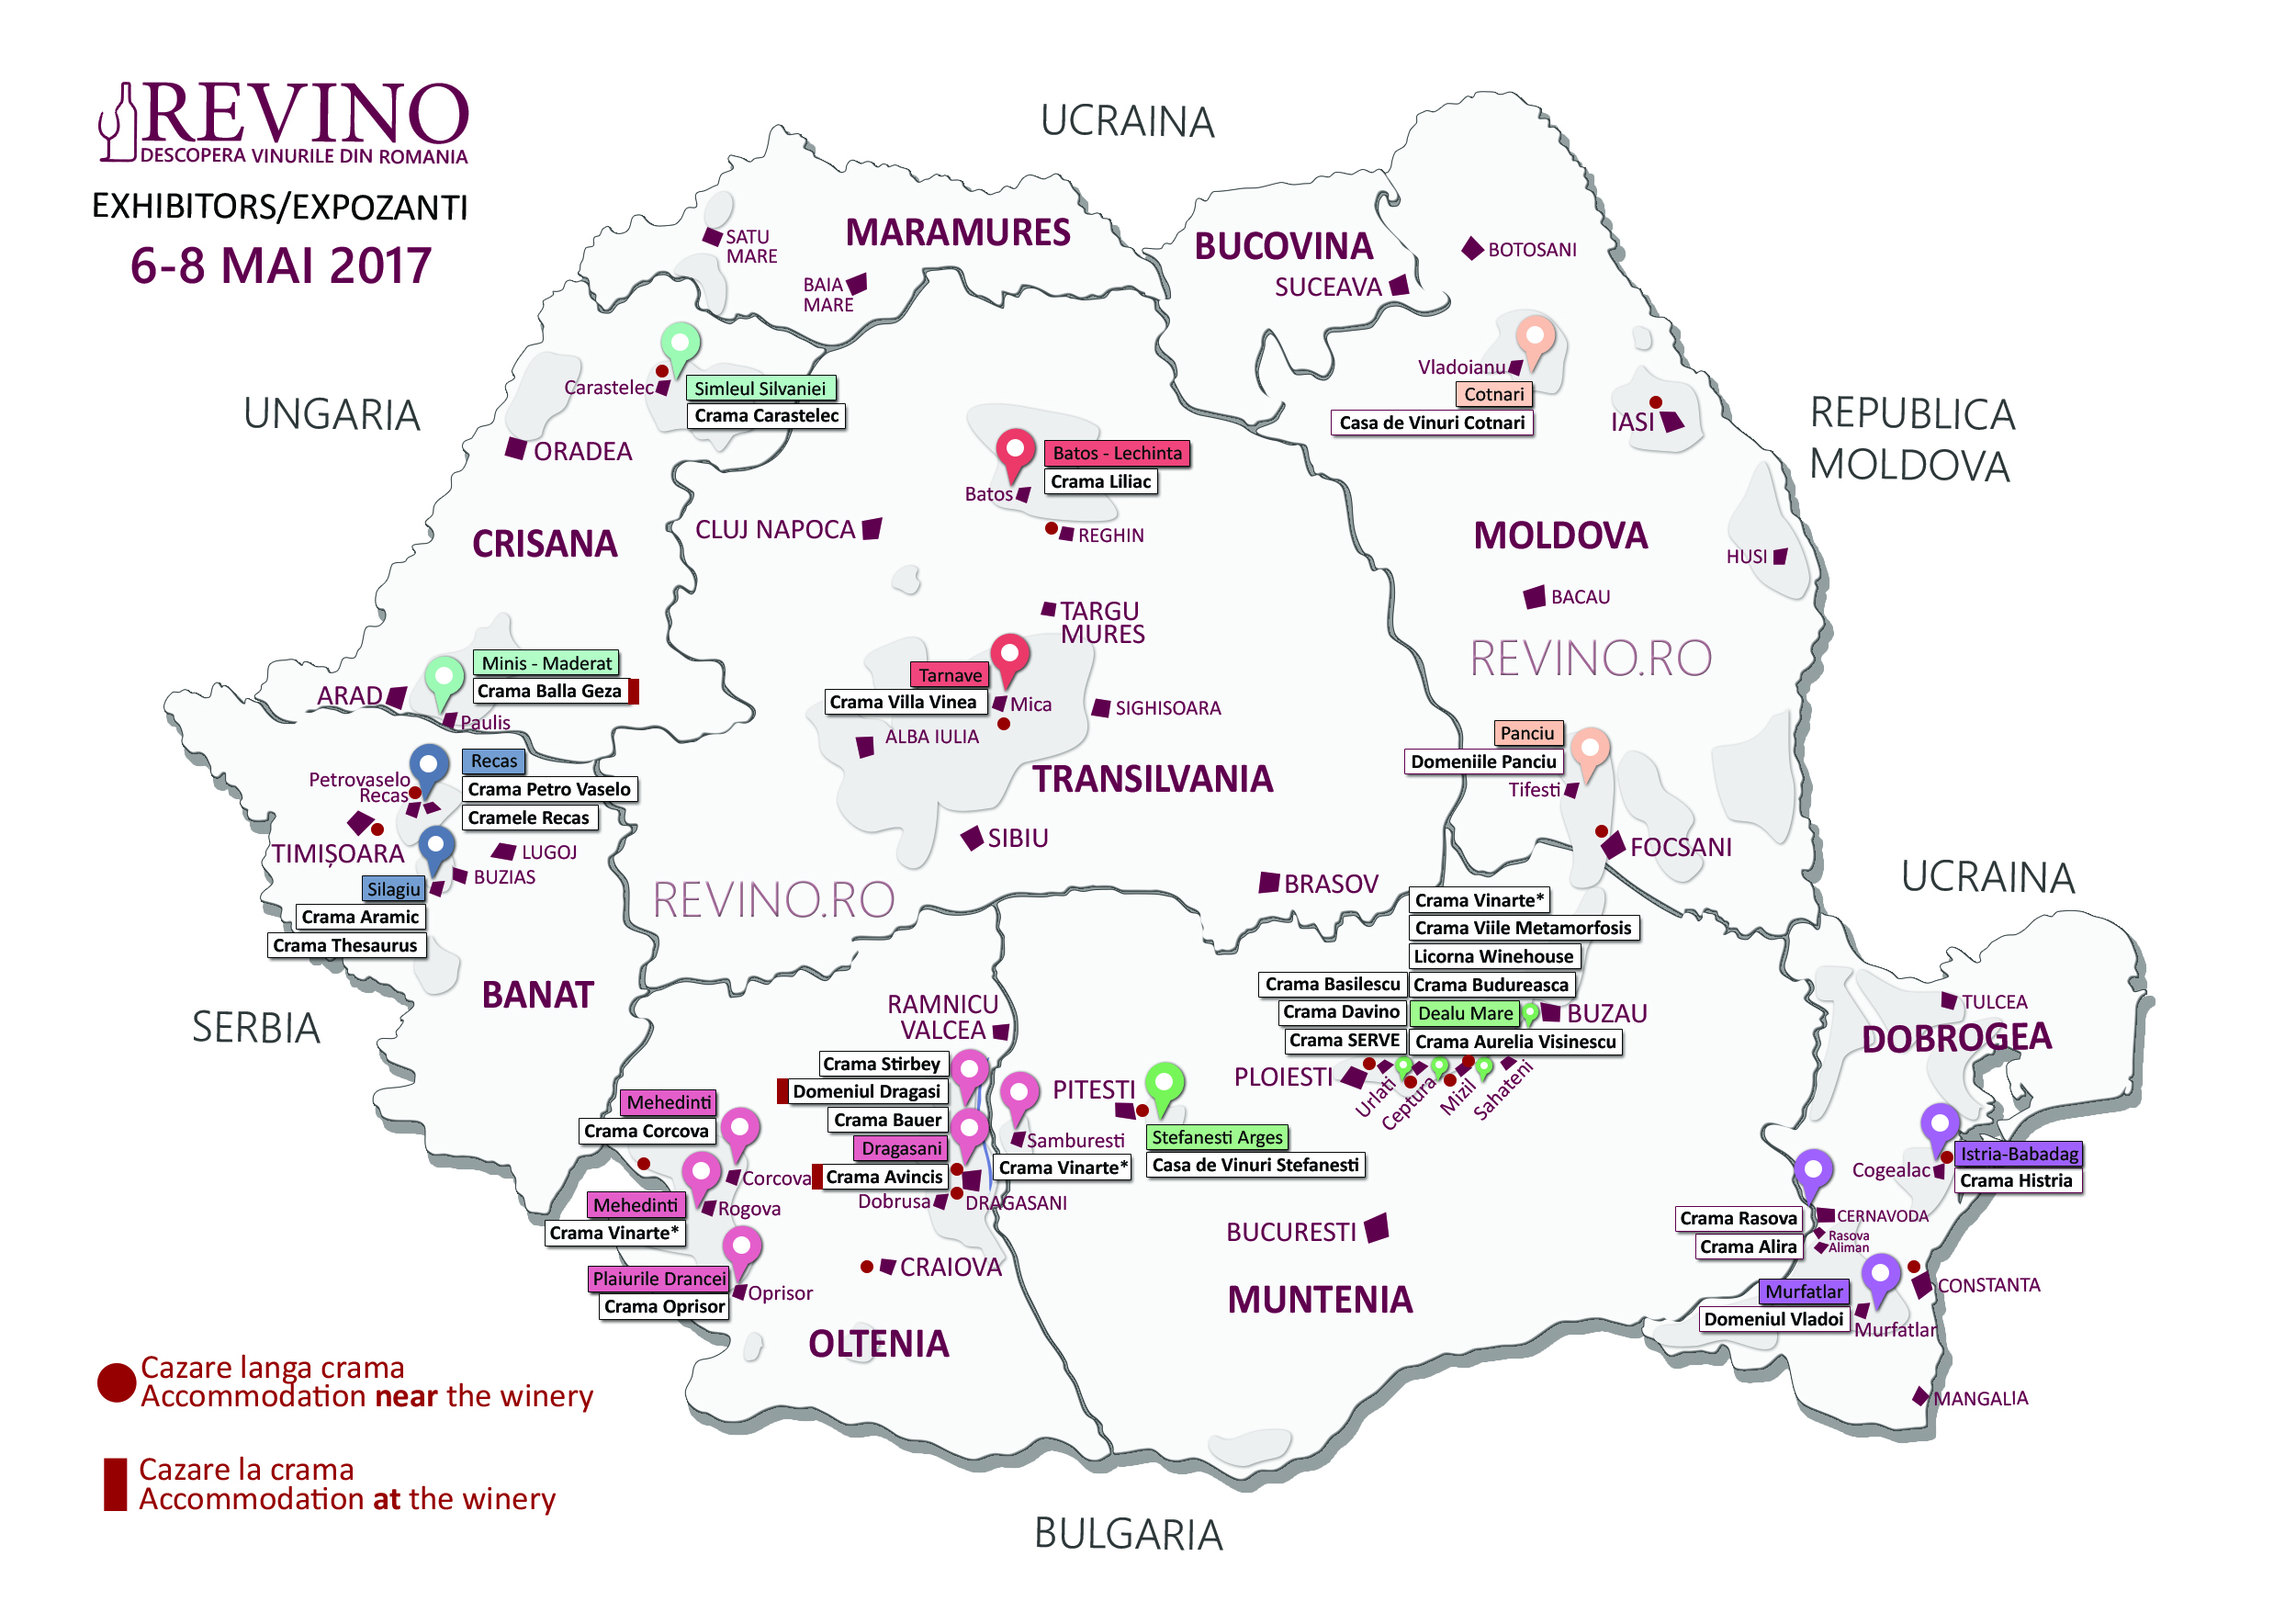 Romania Wine Map Exhibitors 2017